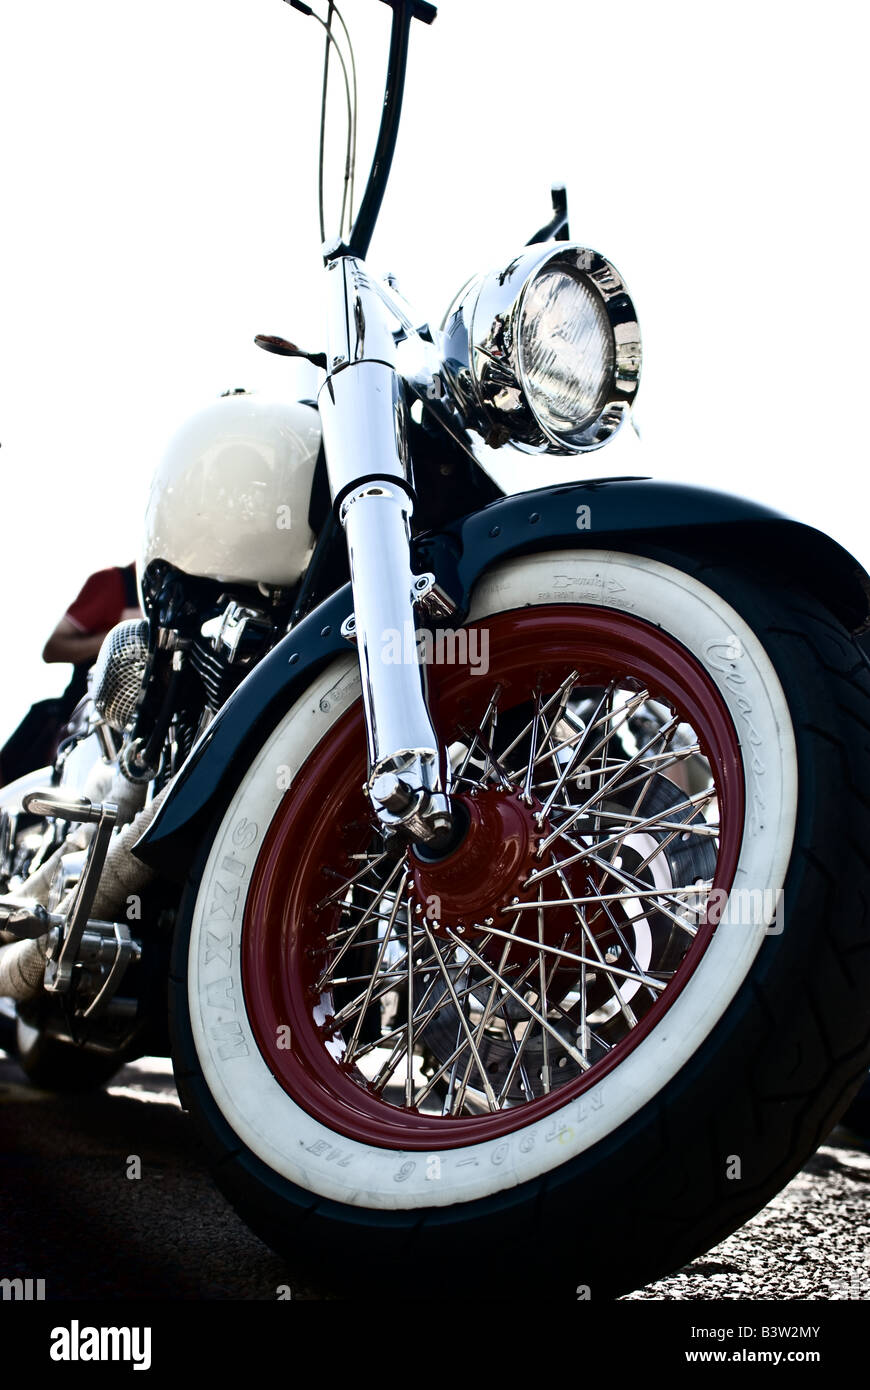 harley davidson motorcycle with white wall tyres on red rims high rise handle bars and